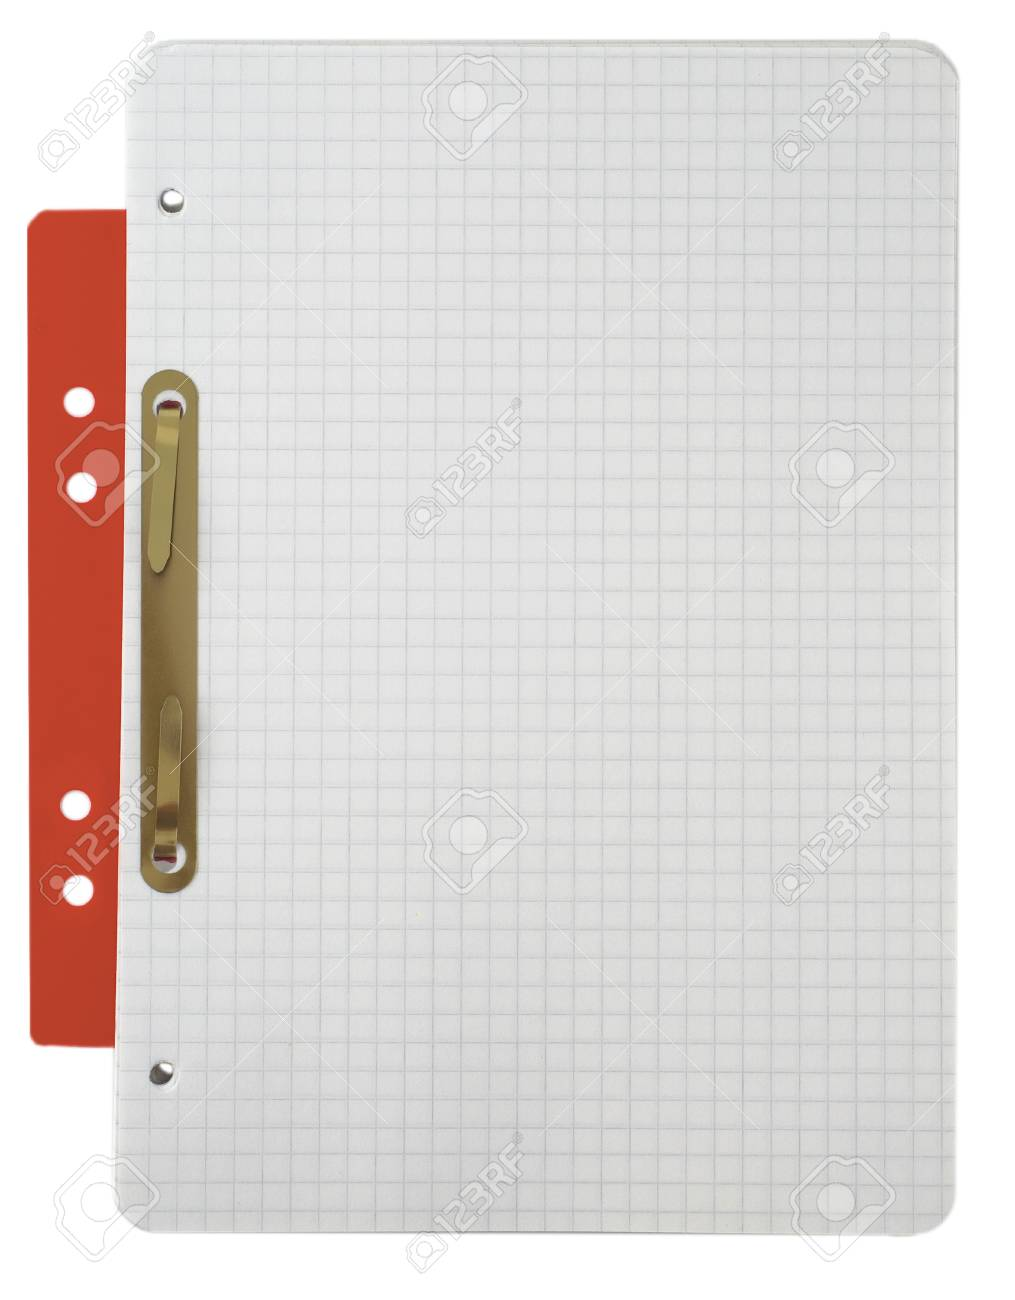 Notebook - Blank Note Book For write Stock Photo - 7720584